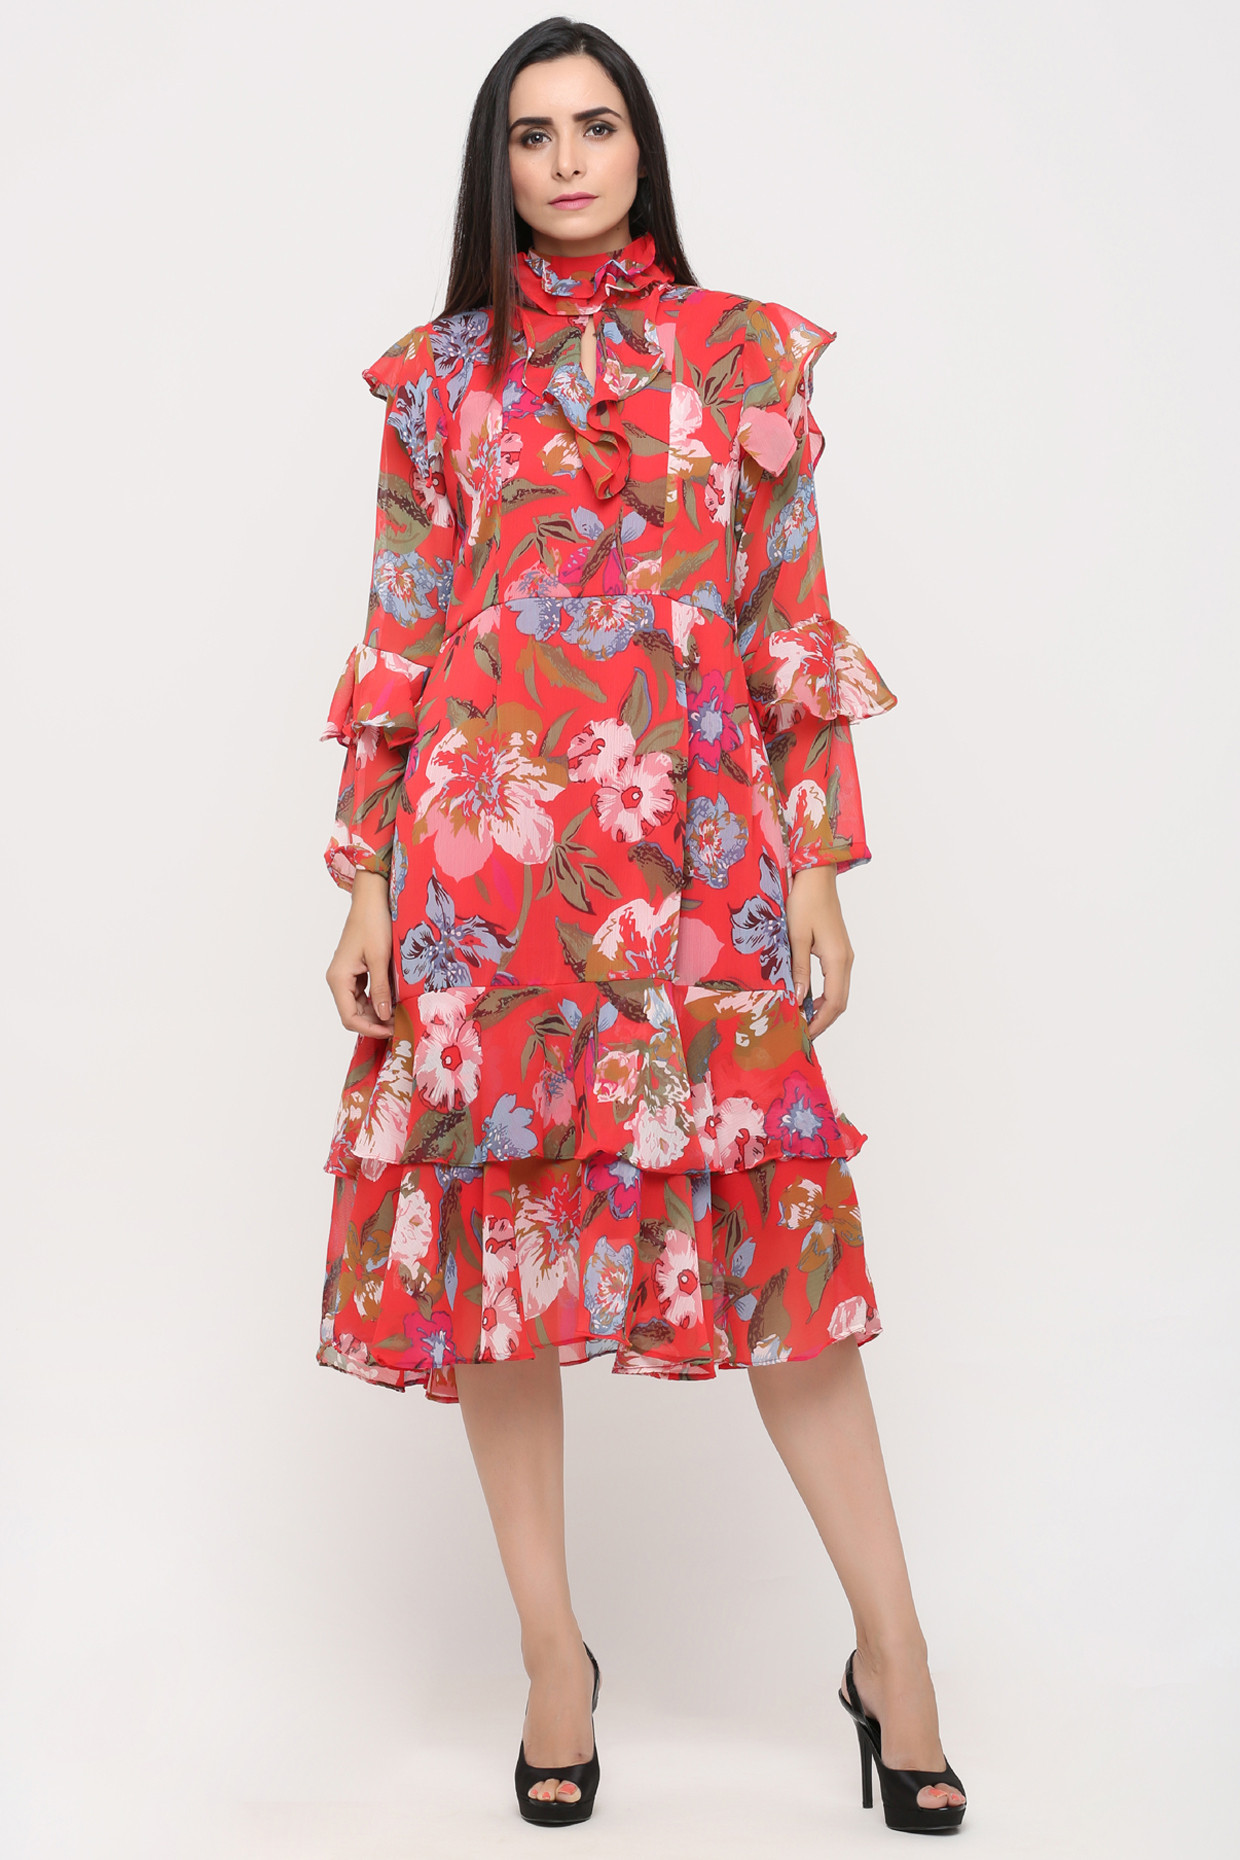 Multicolored Floral Printed Dress by Pooja Verma